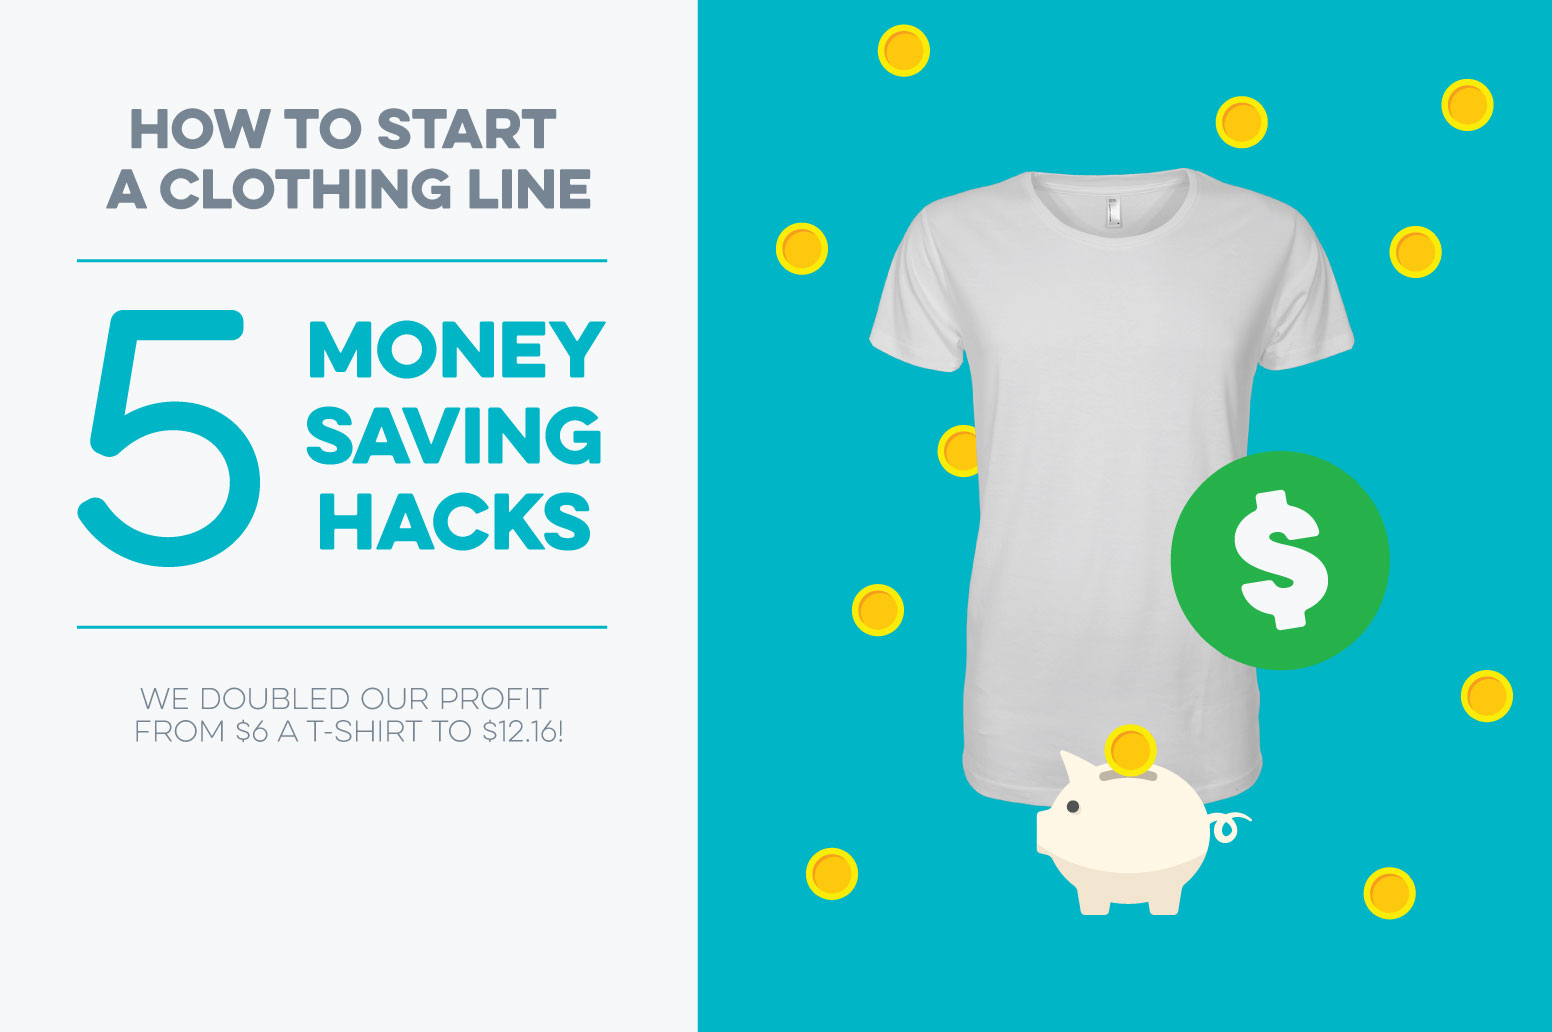 How to start a clothing line – 5 money saving hacks